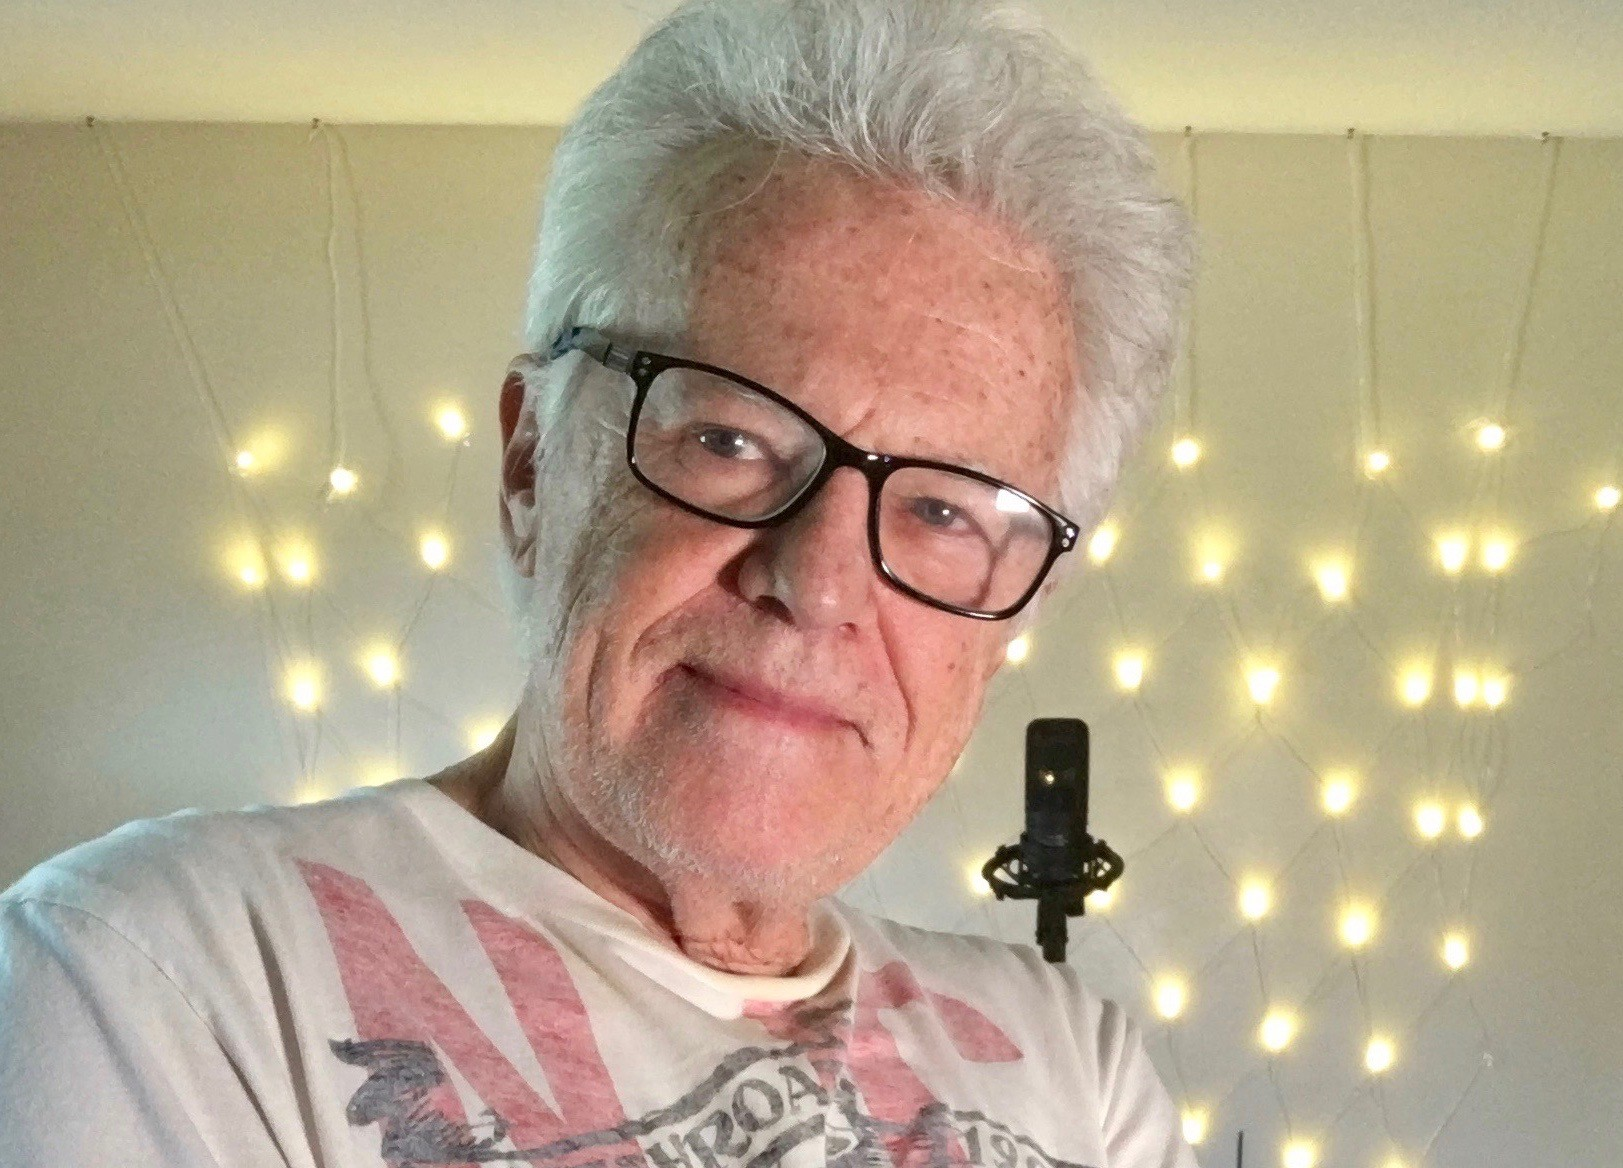 Al Craven Aka The White Raven in a tee shirt with silver hair and black glasses in a recent photo with twinkly lights behind him.